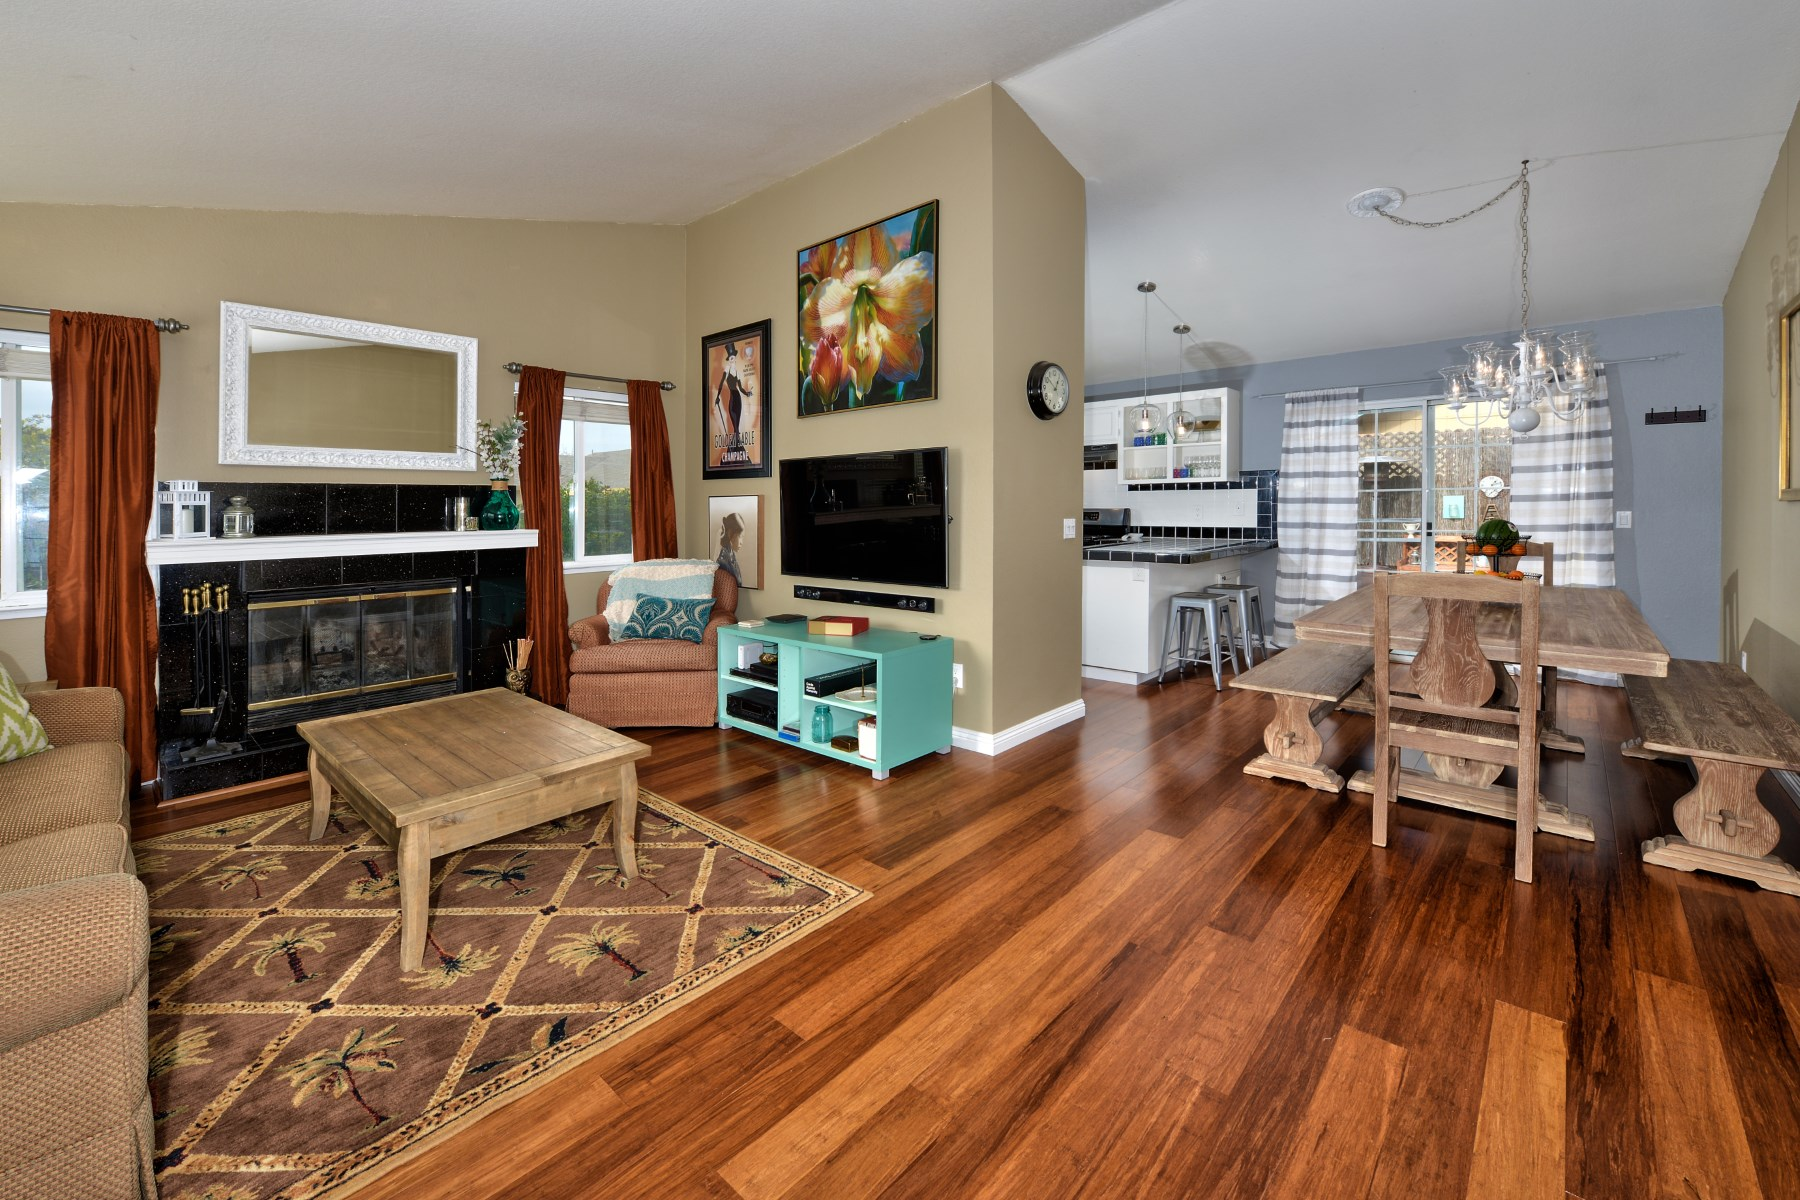 Single Family Home for Sale at Pinterest-Worthy Cutie 1101 Putney Dr Santa Rosa, California 95401 United States